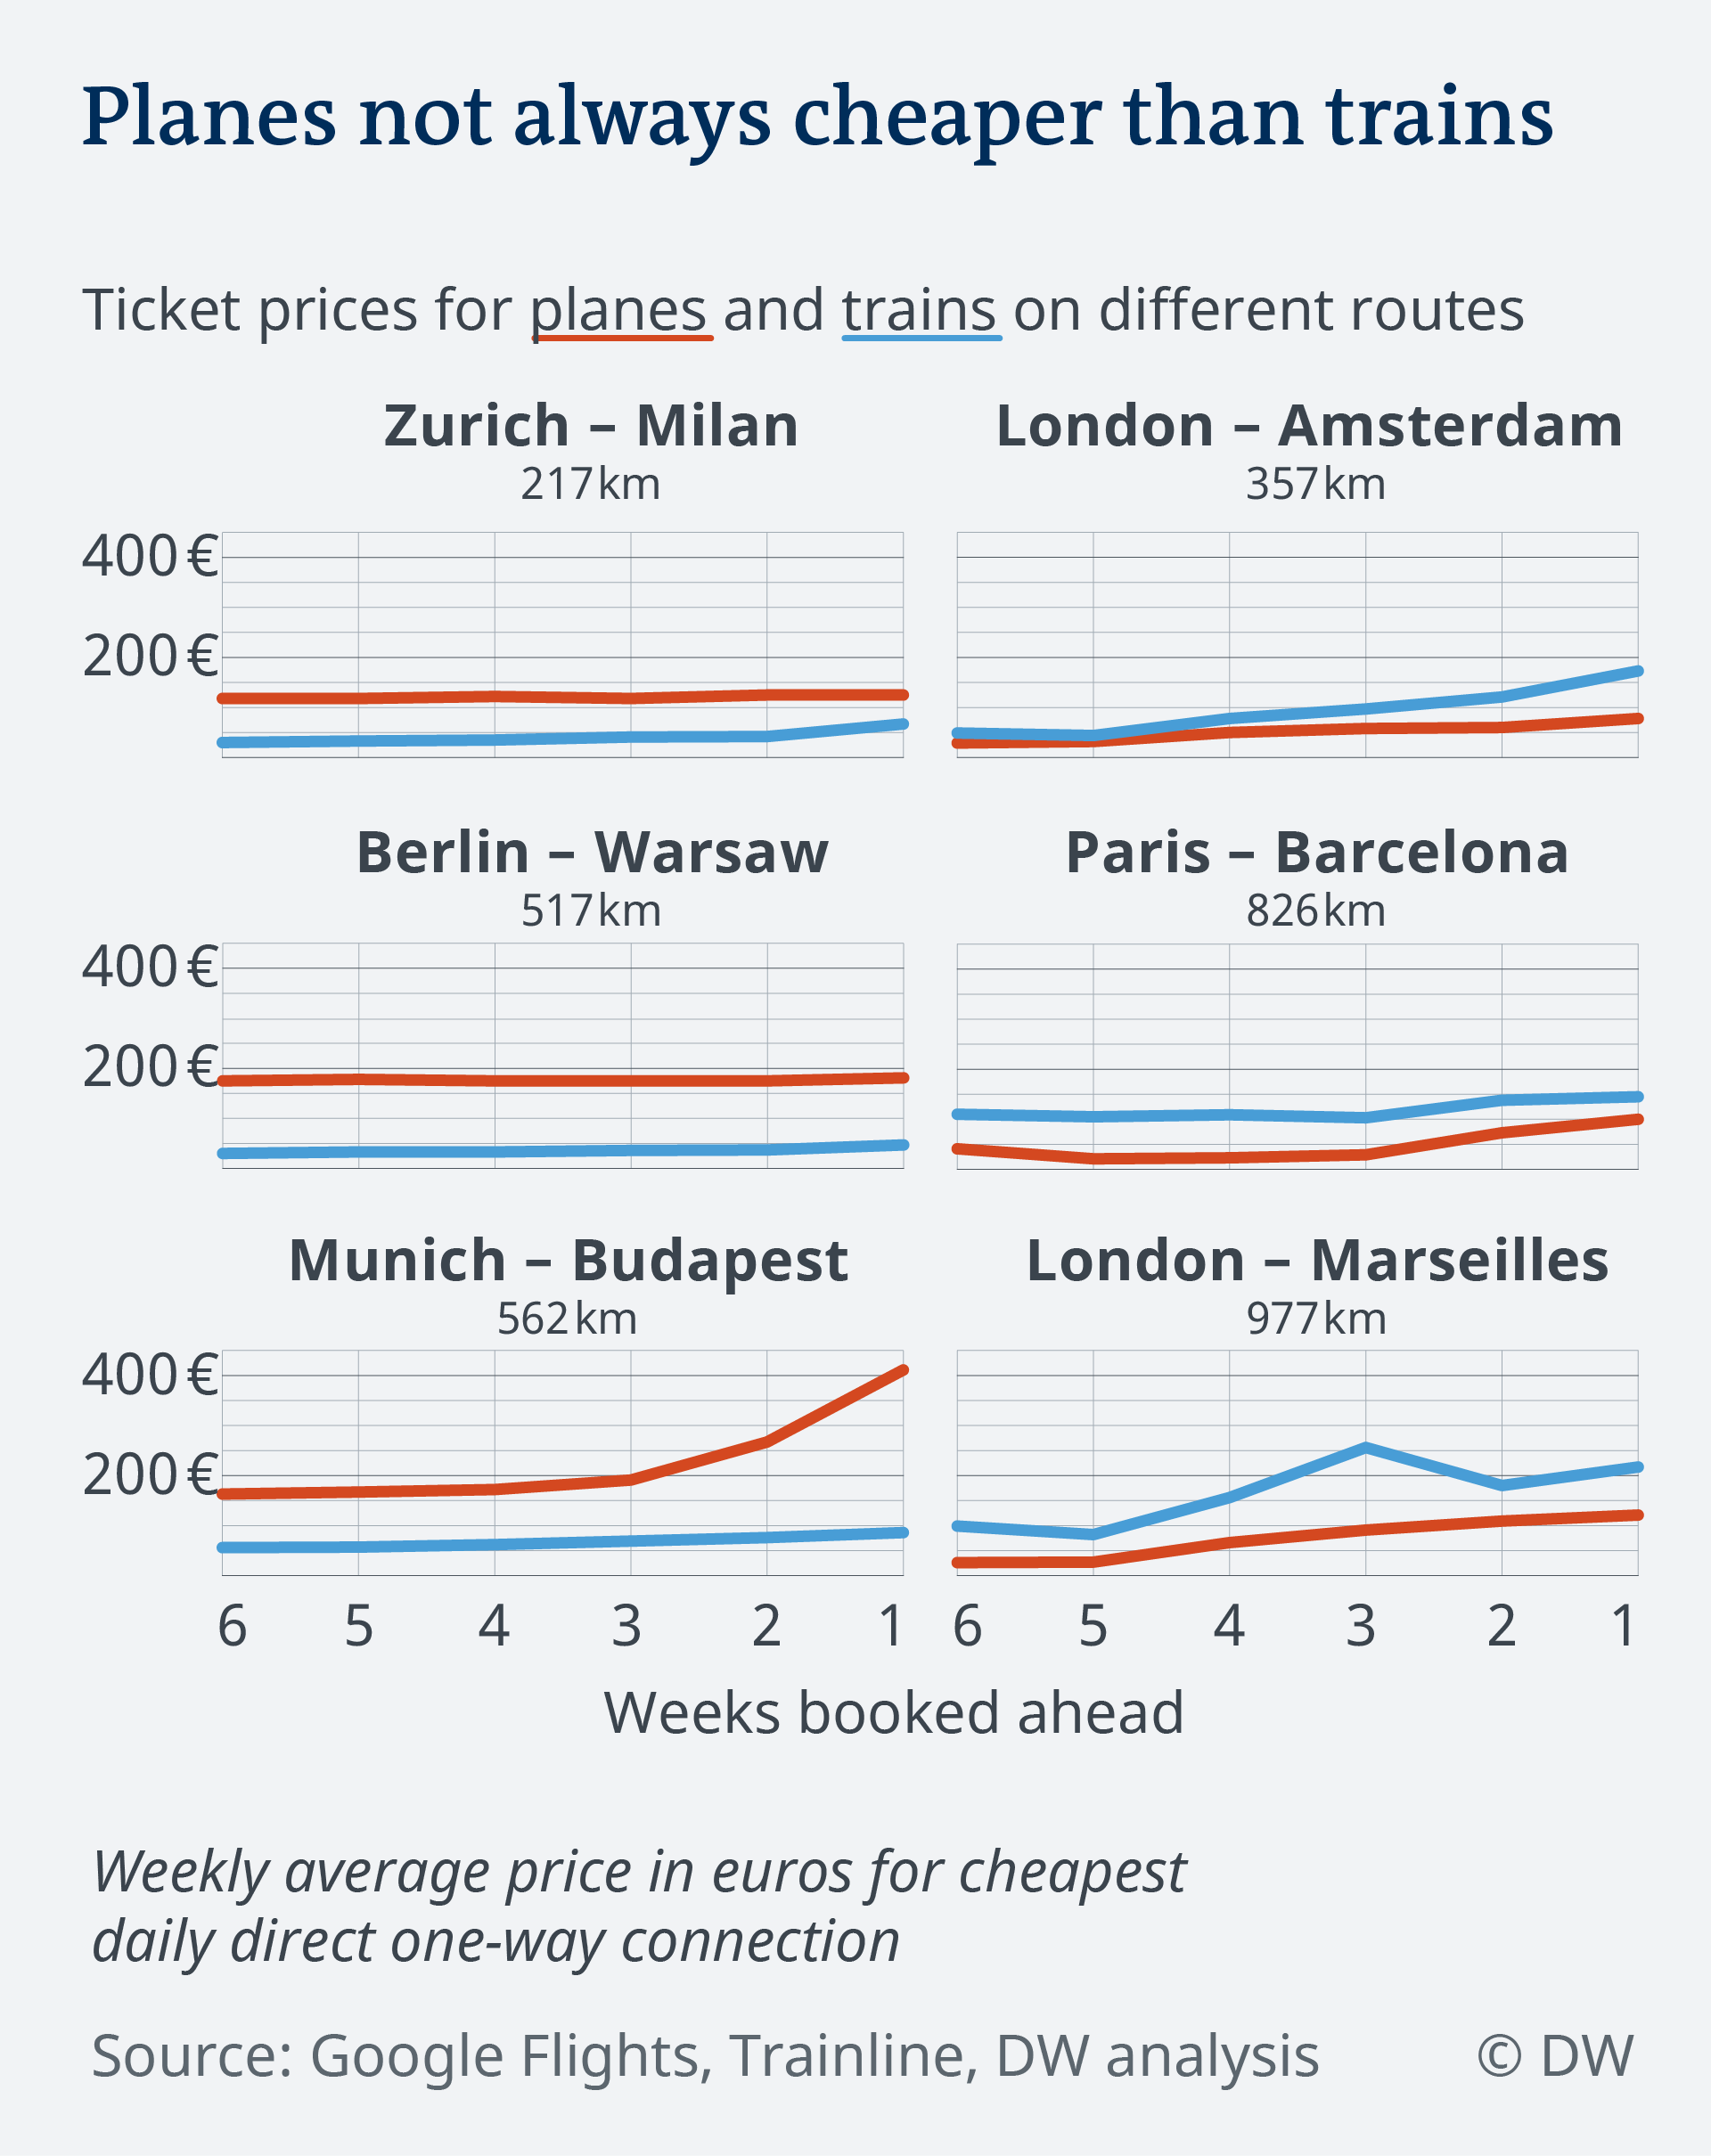 For half of the routes, a plane ticket is cheaper than a